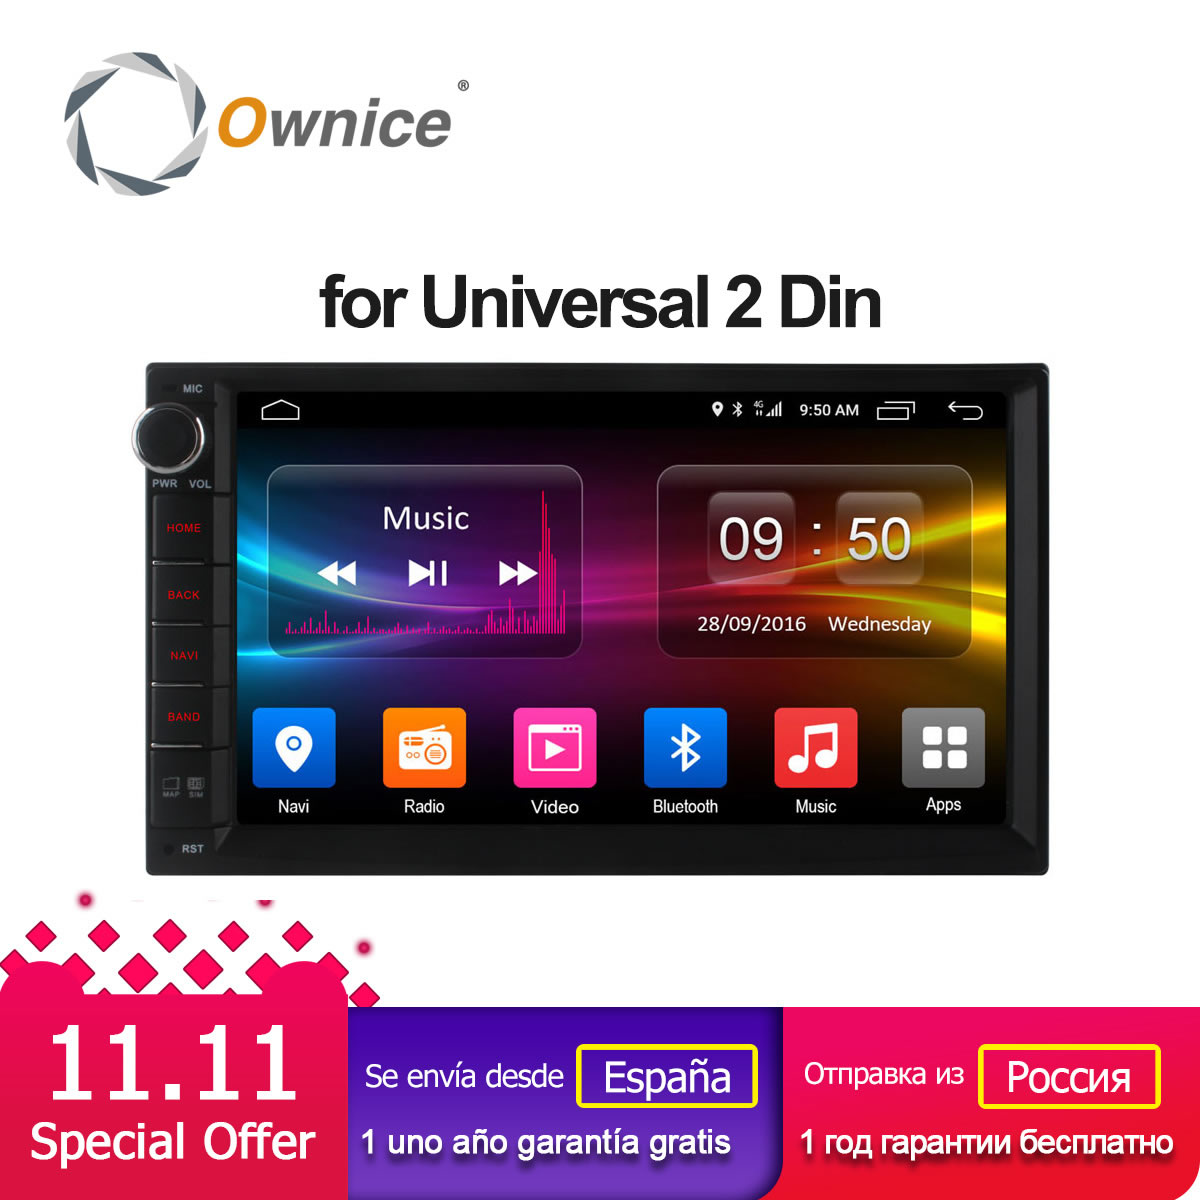 Ownice C500 Android 6.0 Octa 8 core Radio 2 DIN 2GB RAM 32GB ROM universal GPS radio wifi Support 4G LTE Network DAB+ no dvd ownice c500 g10 octa core 2gb ram 32g rom android car dvd 8 1 gps for mazda 6 summit 2009 2015 wifi 4g lte radio dab dvr